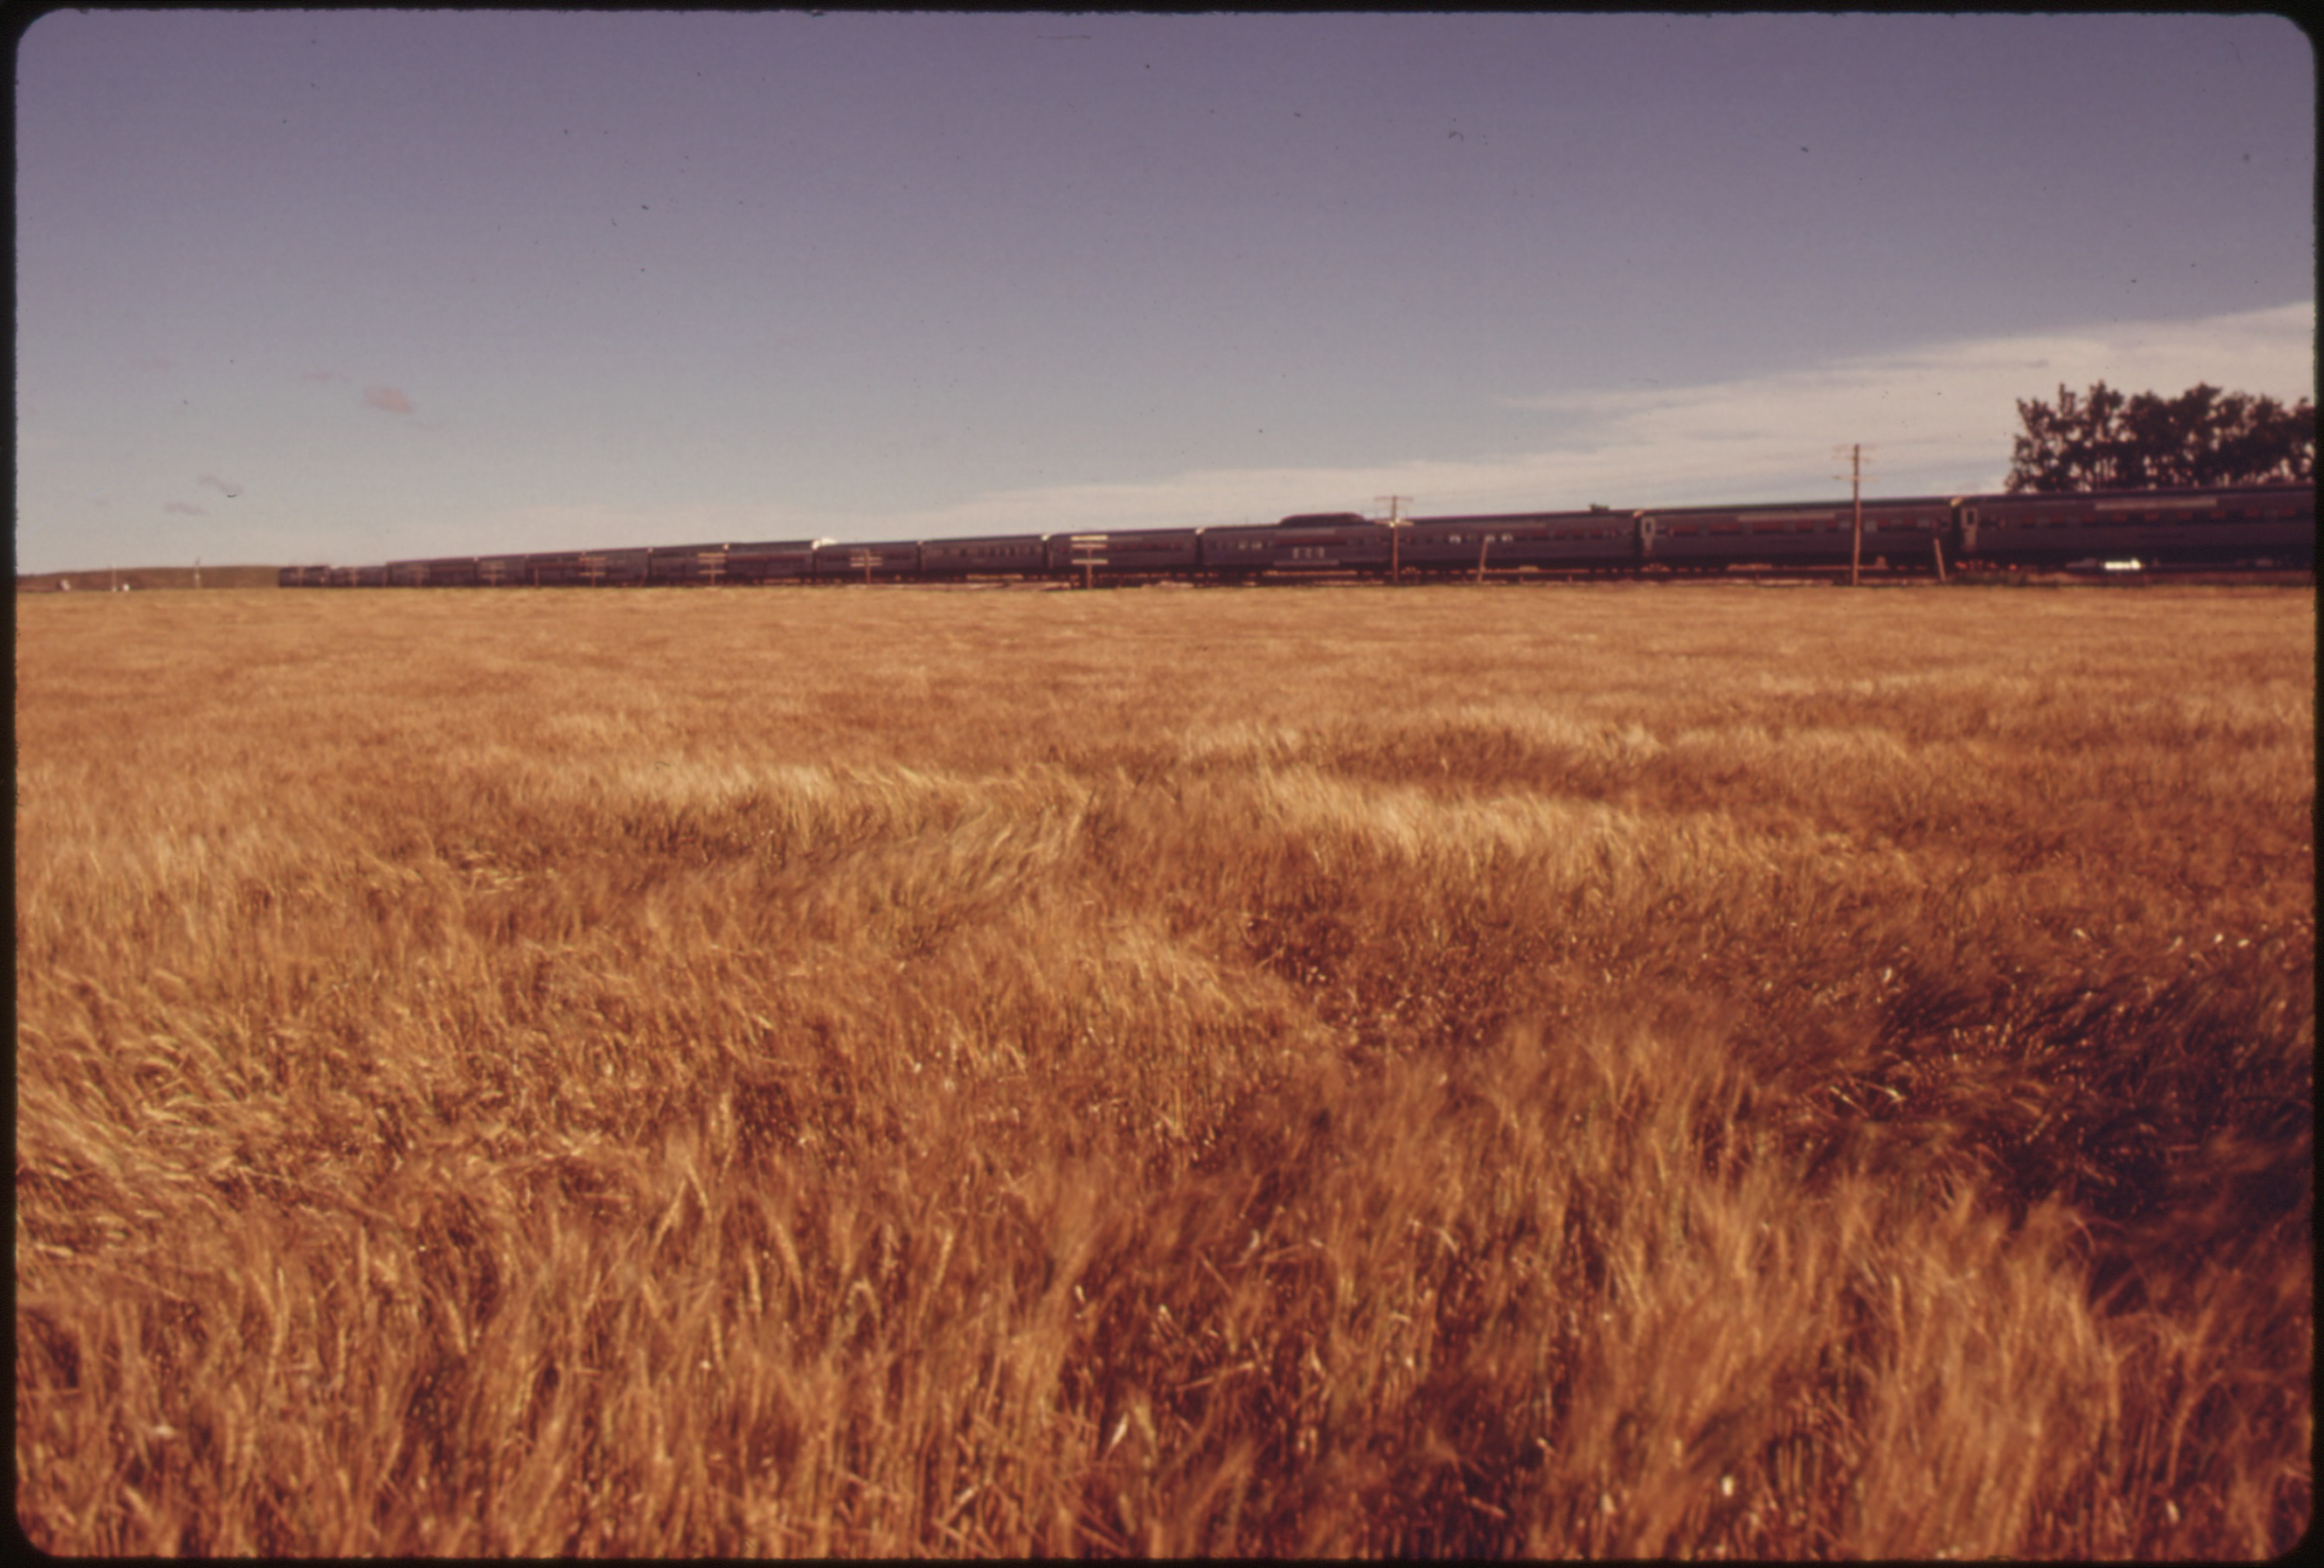 File:THE SOUTHWEST LIMITED PASSES RIPENING WHEAT FIELDS NEAR DODGE CITY, KANSAS. TWO PASSENGER ...